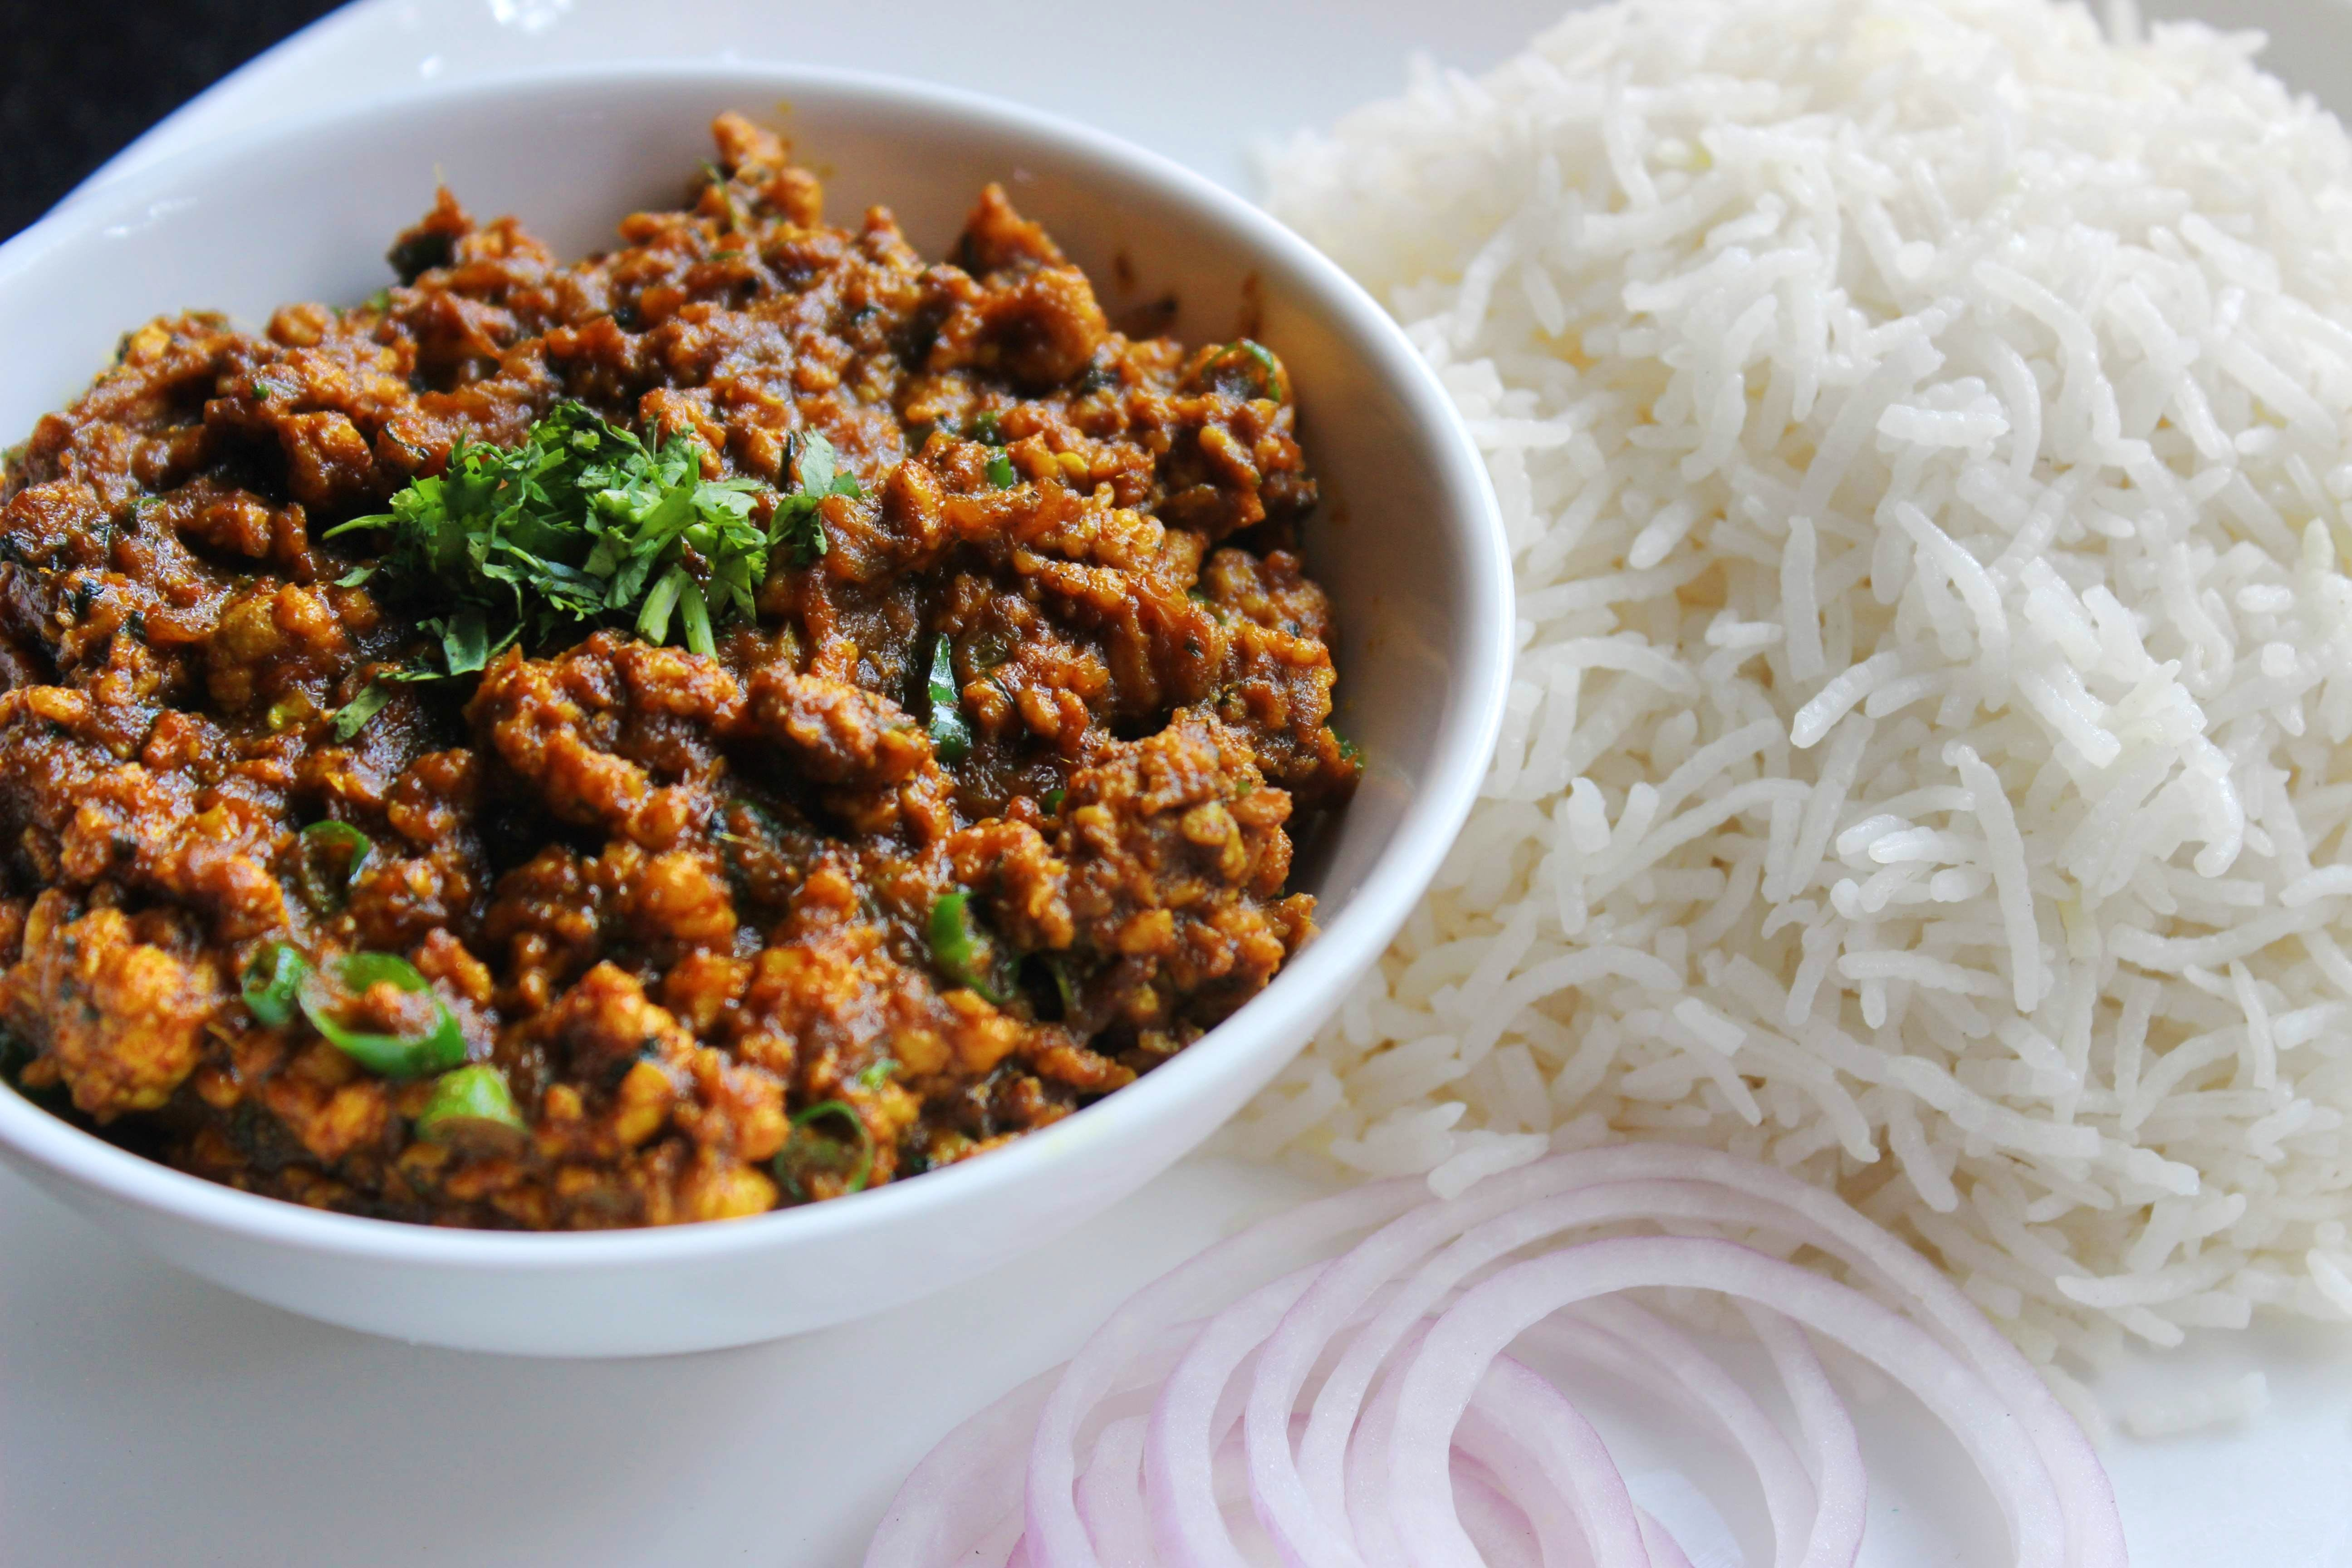 Dish,Food,Cuisine,Ingredient,Curry,Produce,Recipe,Picadillo,Indian cuisine,Dhansak